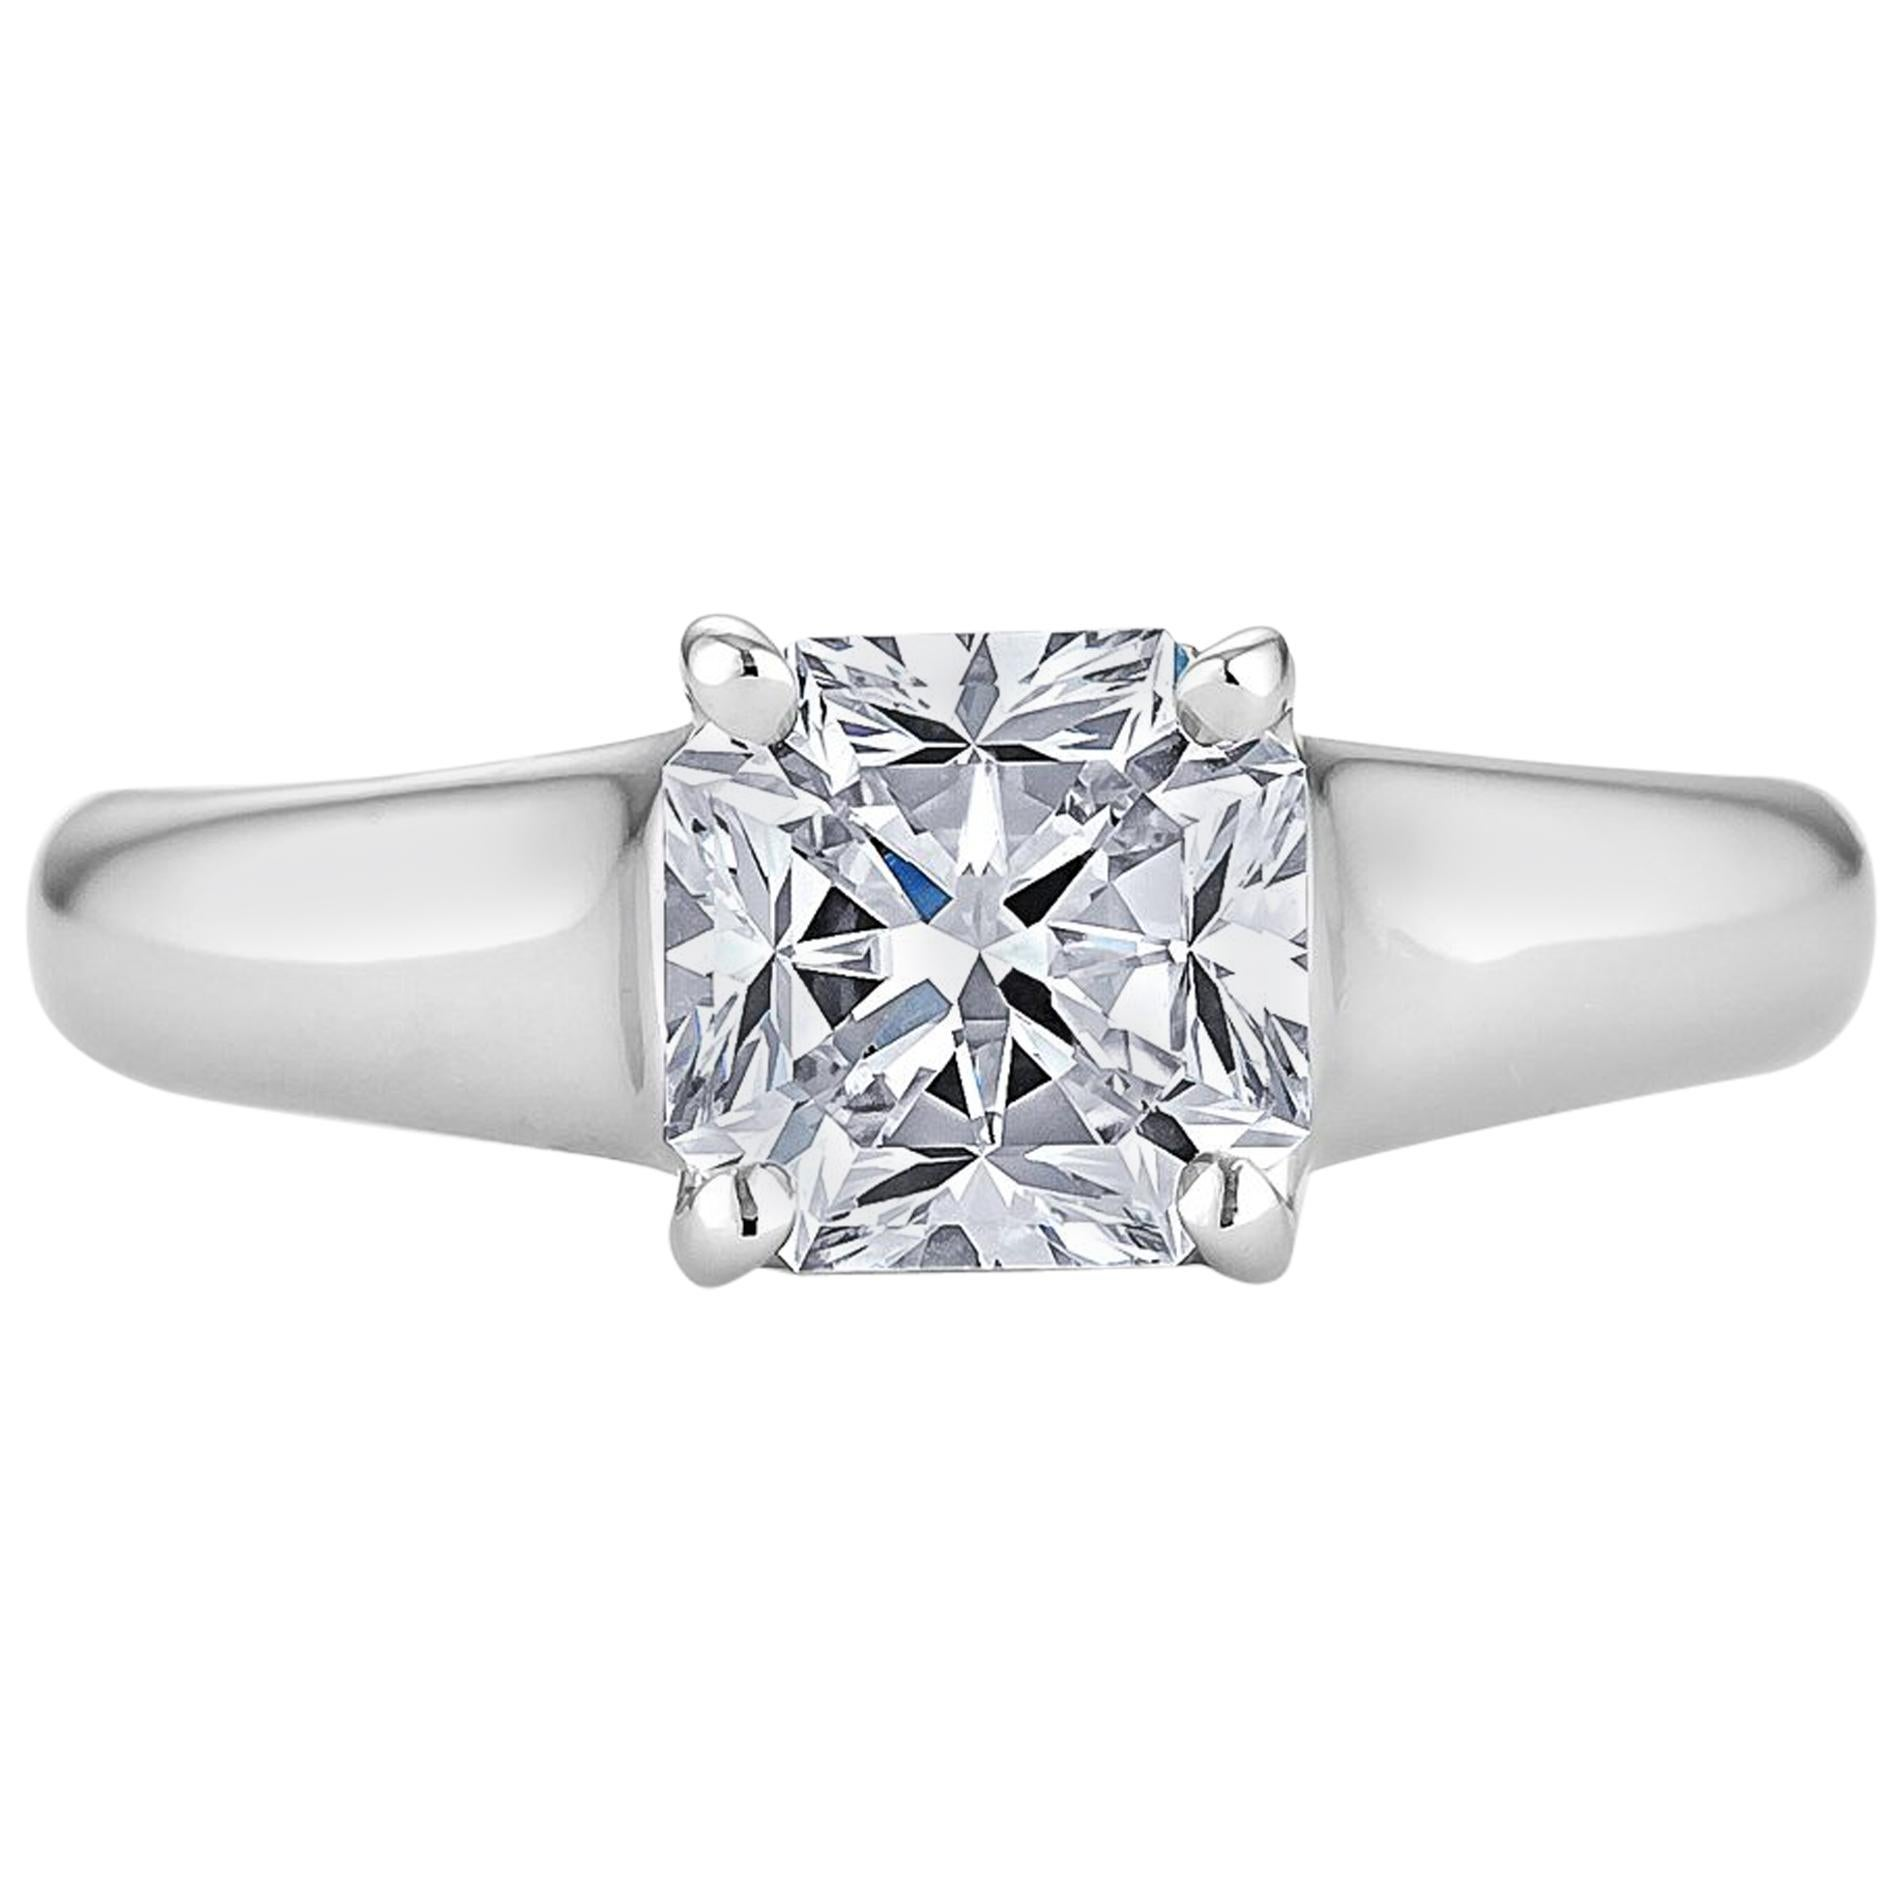 1709bd3d9 Tiffany and Co. Diamond and Platinum Engagement Ring. at 1stdibs